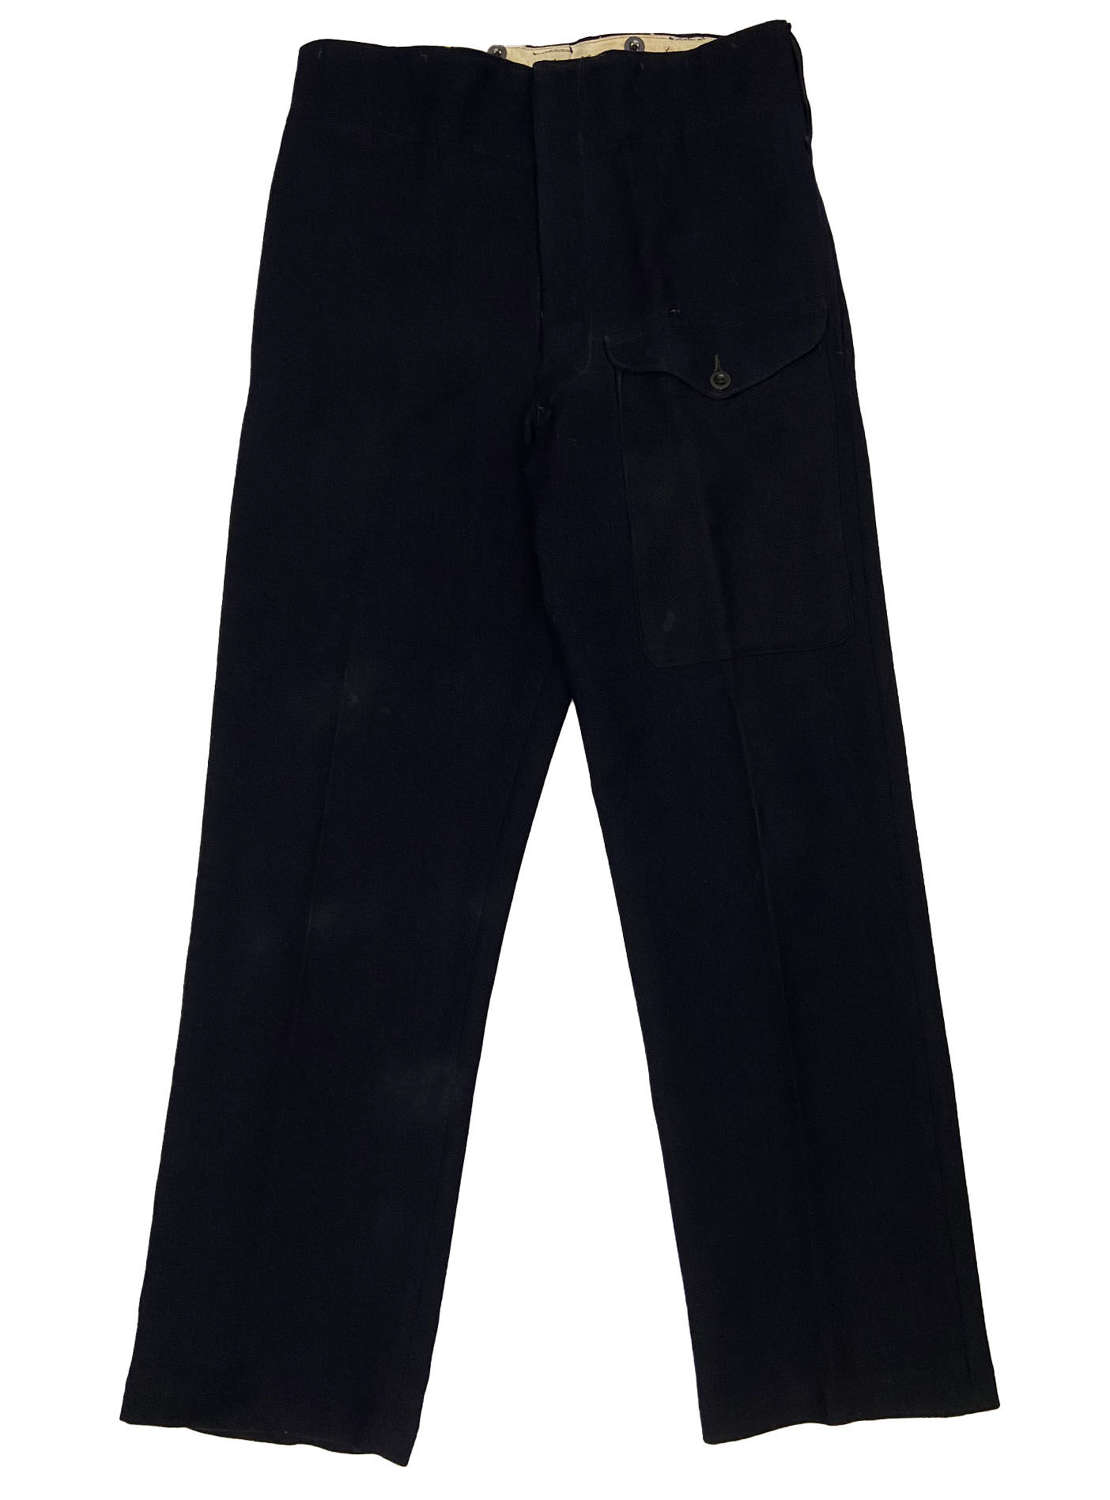 Original 1943 Dated Civil Defence Battledress Trousers